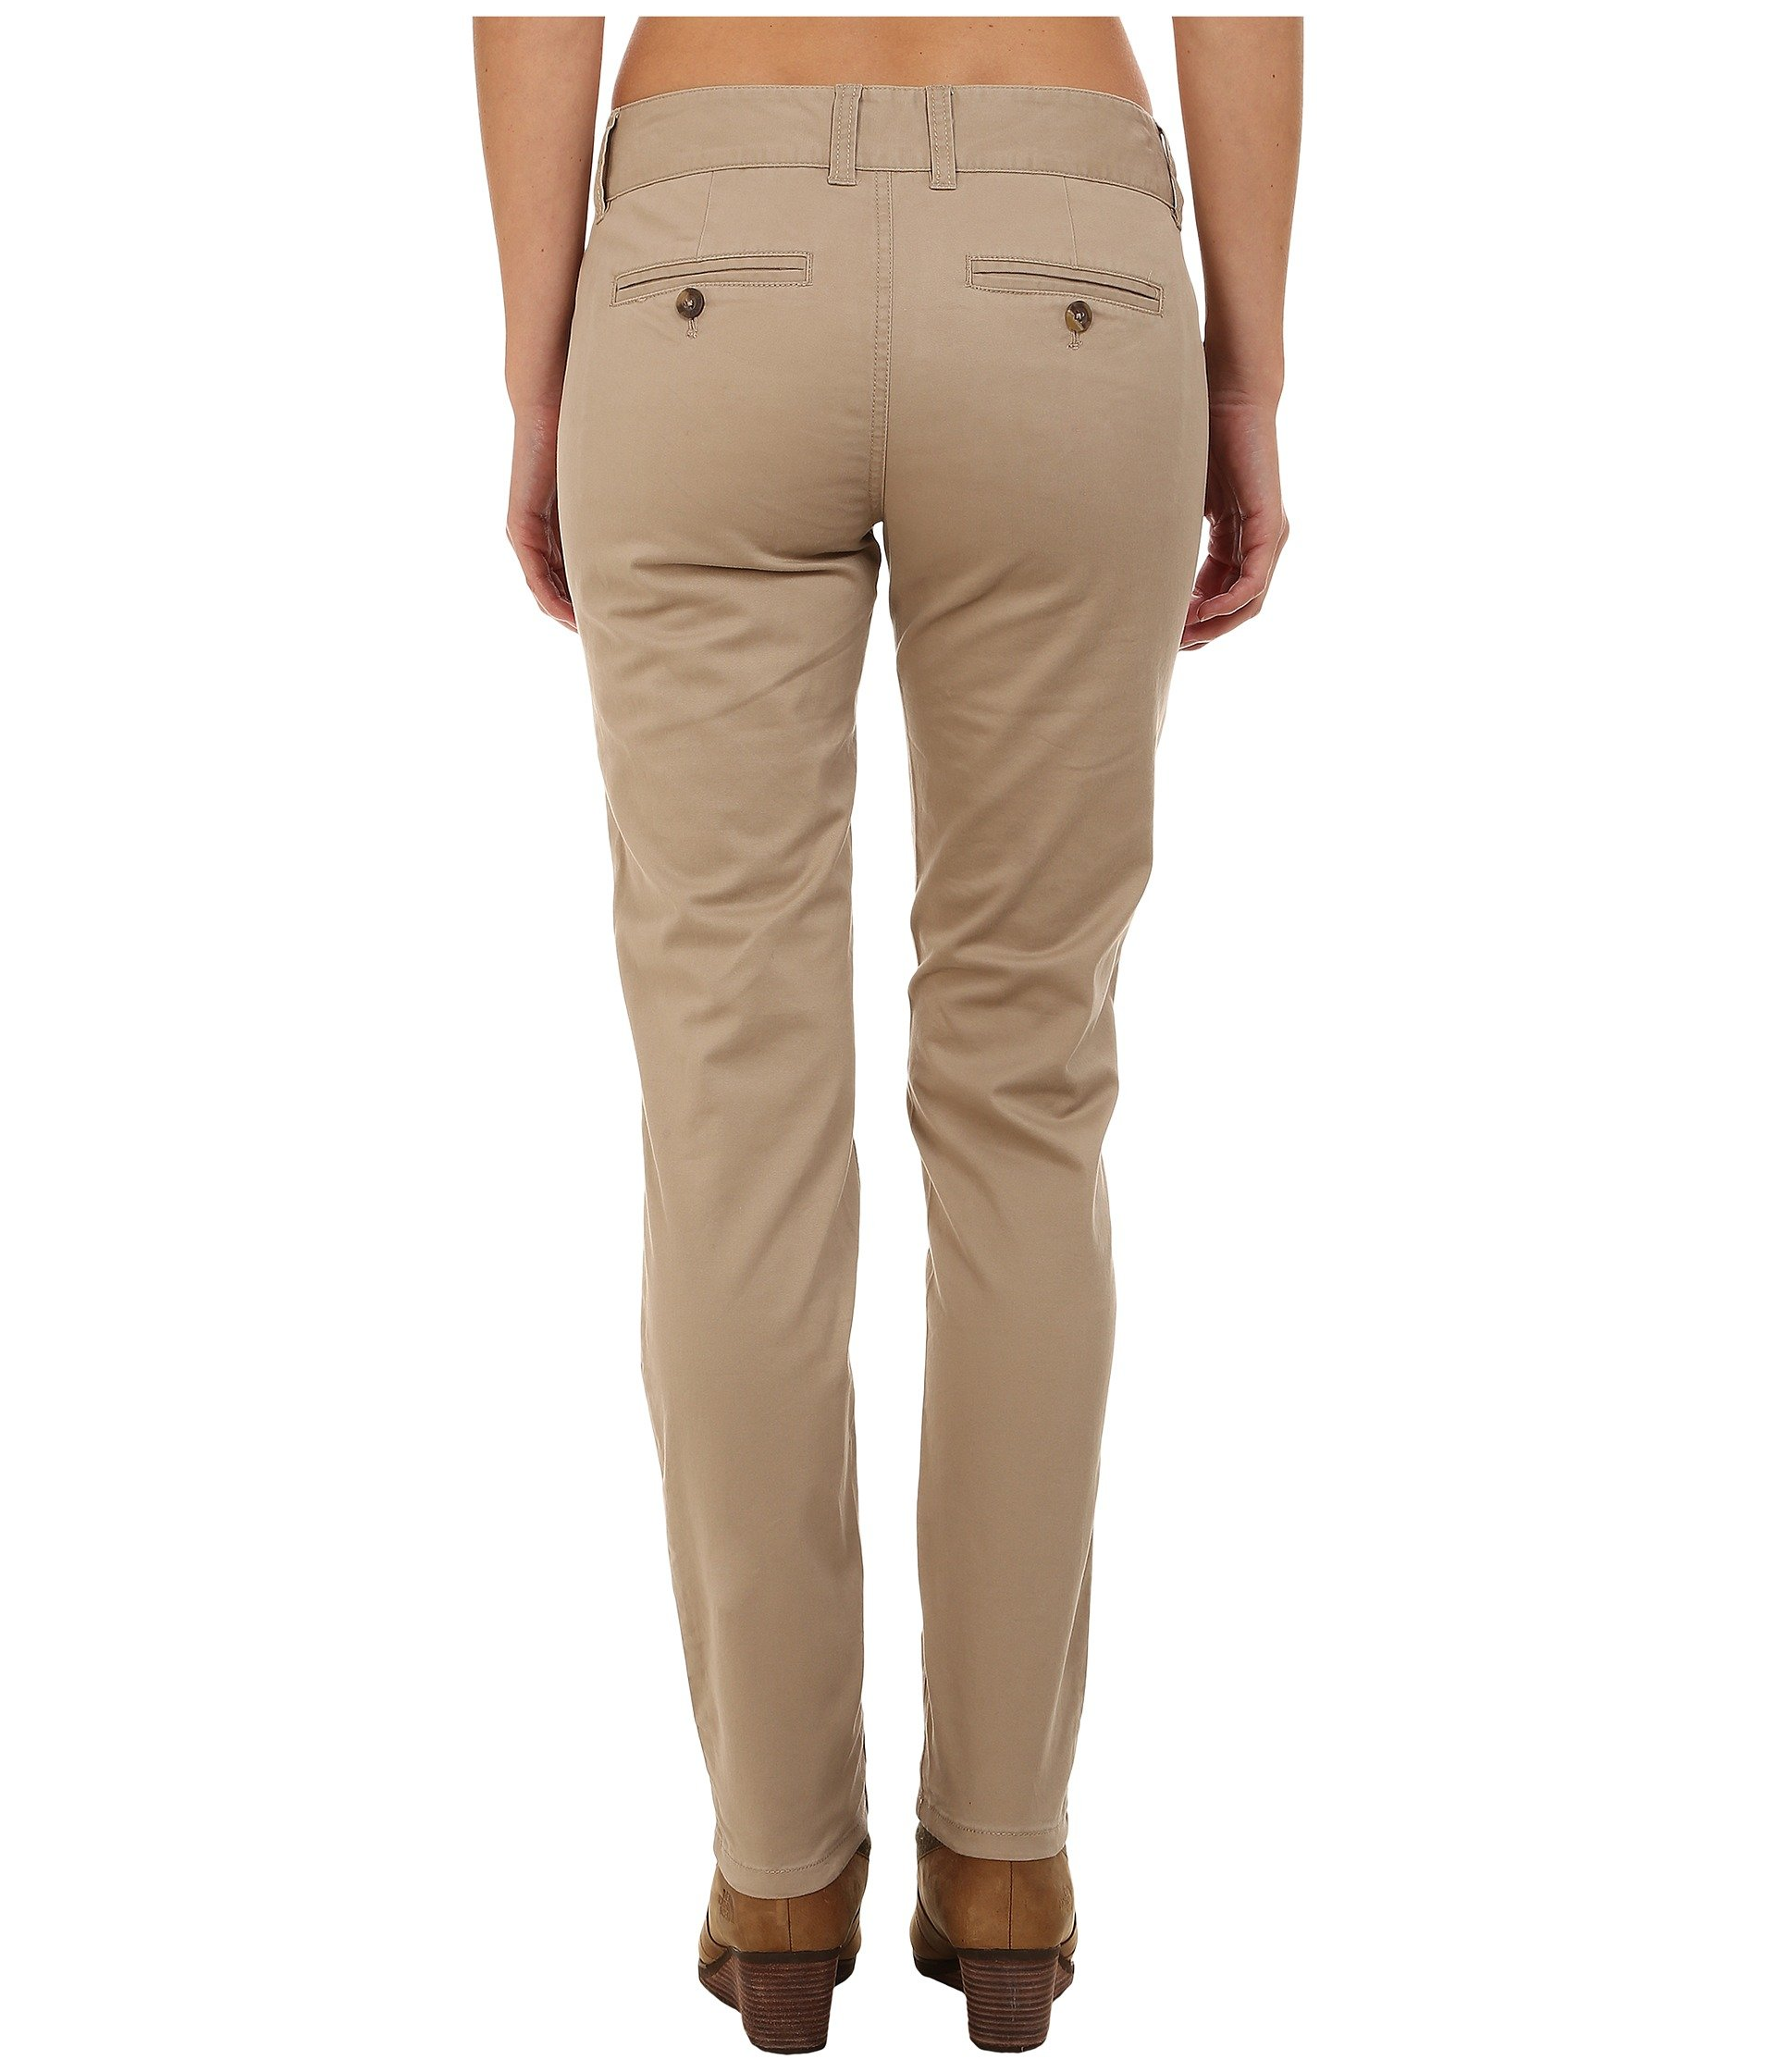 Find great deals on eBay for skinny khaki pants. Shop with confidence.